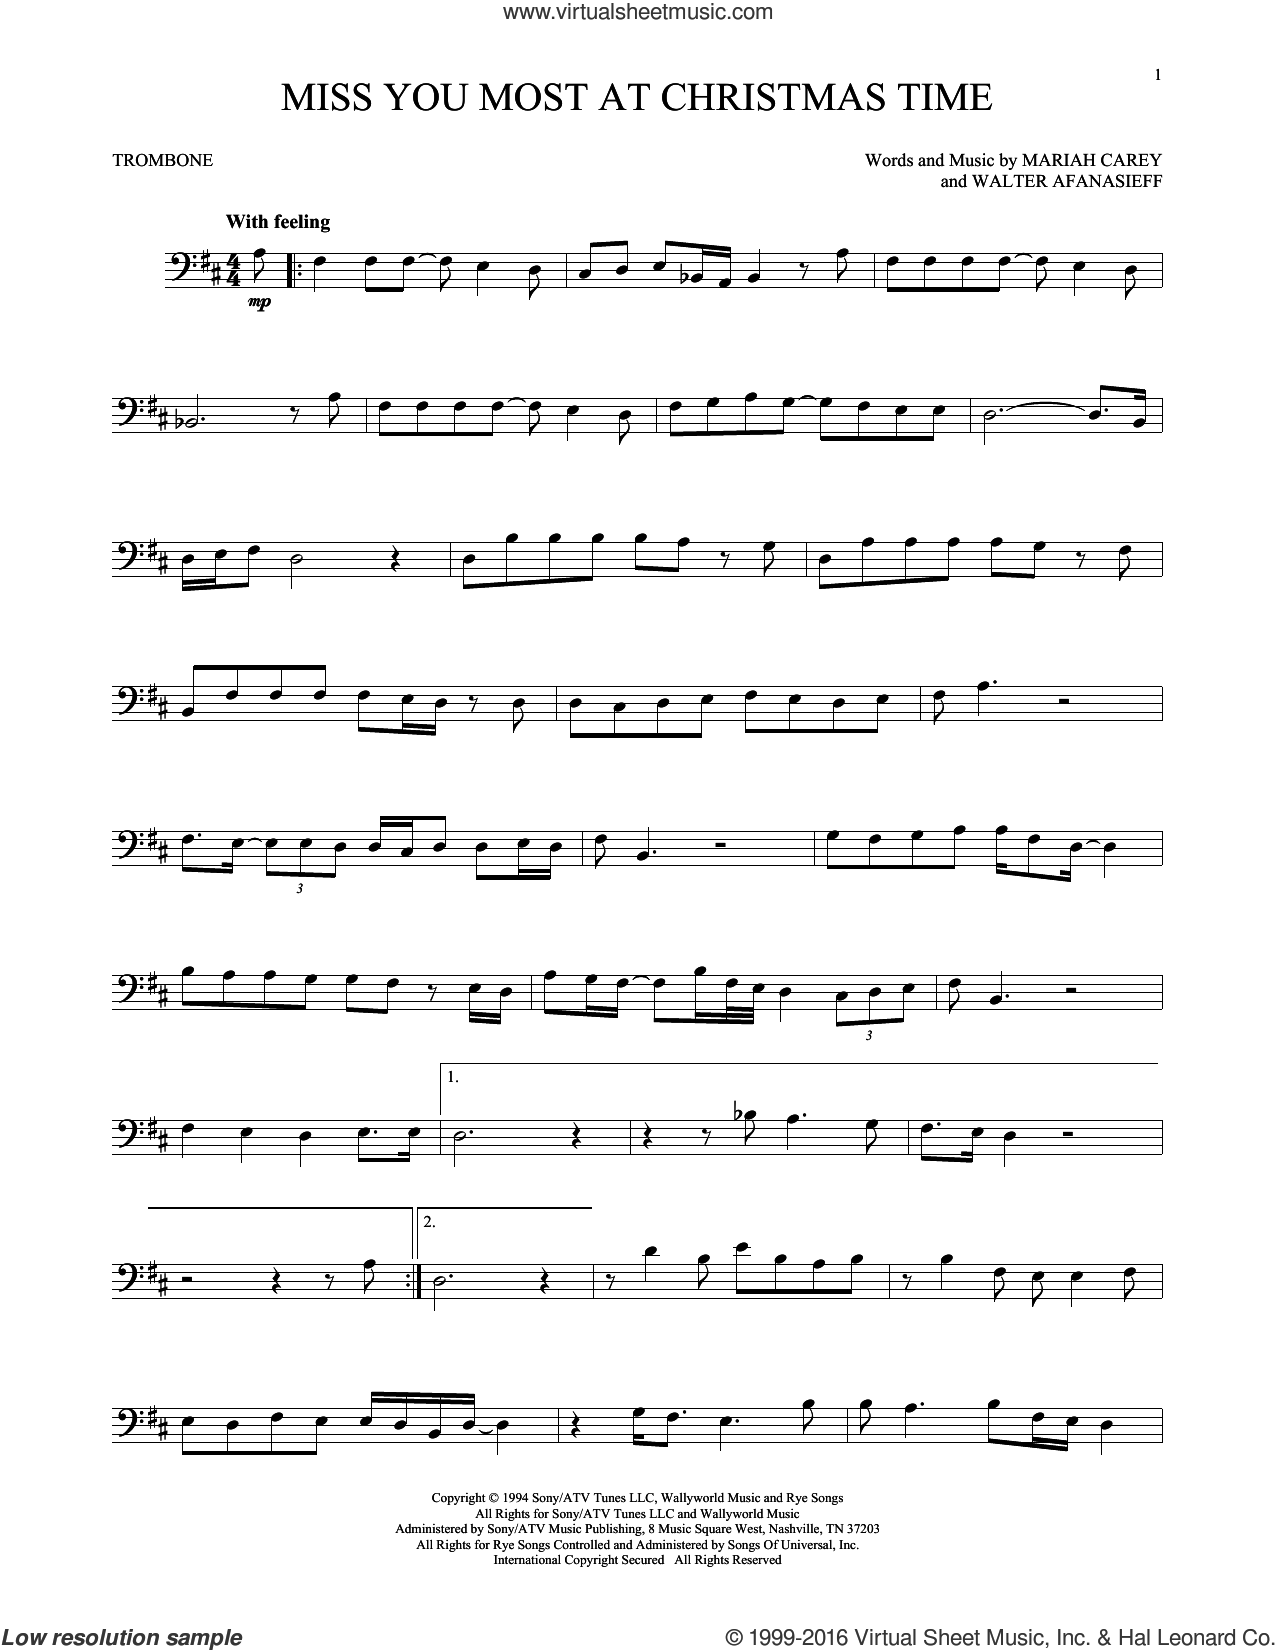 Miss You Most At Christmas Time sheet music for trombone solo by Mariah Carey and Walter Afanasieff, intermediate skill level